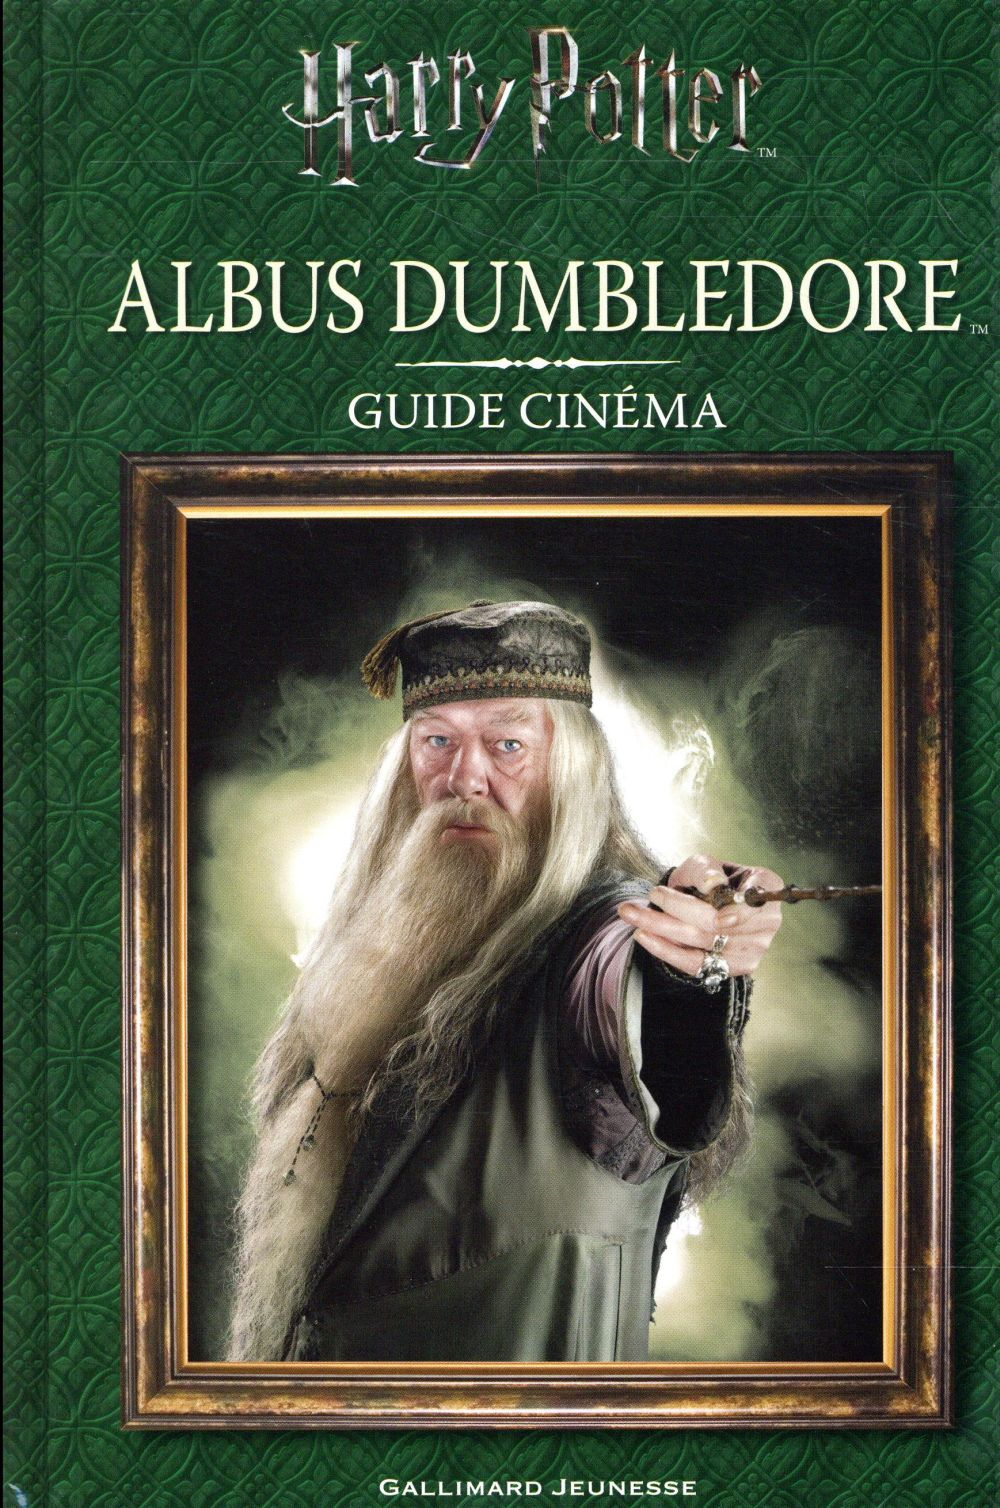 GUIDE CINEMA 4 : ALBUS DUMBLEDORE COLLECTIFS JEUNESSE Gallimard-Jeunesse